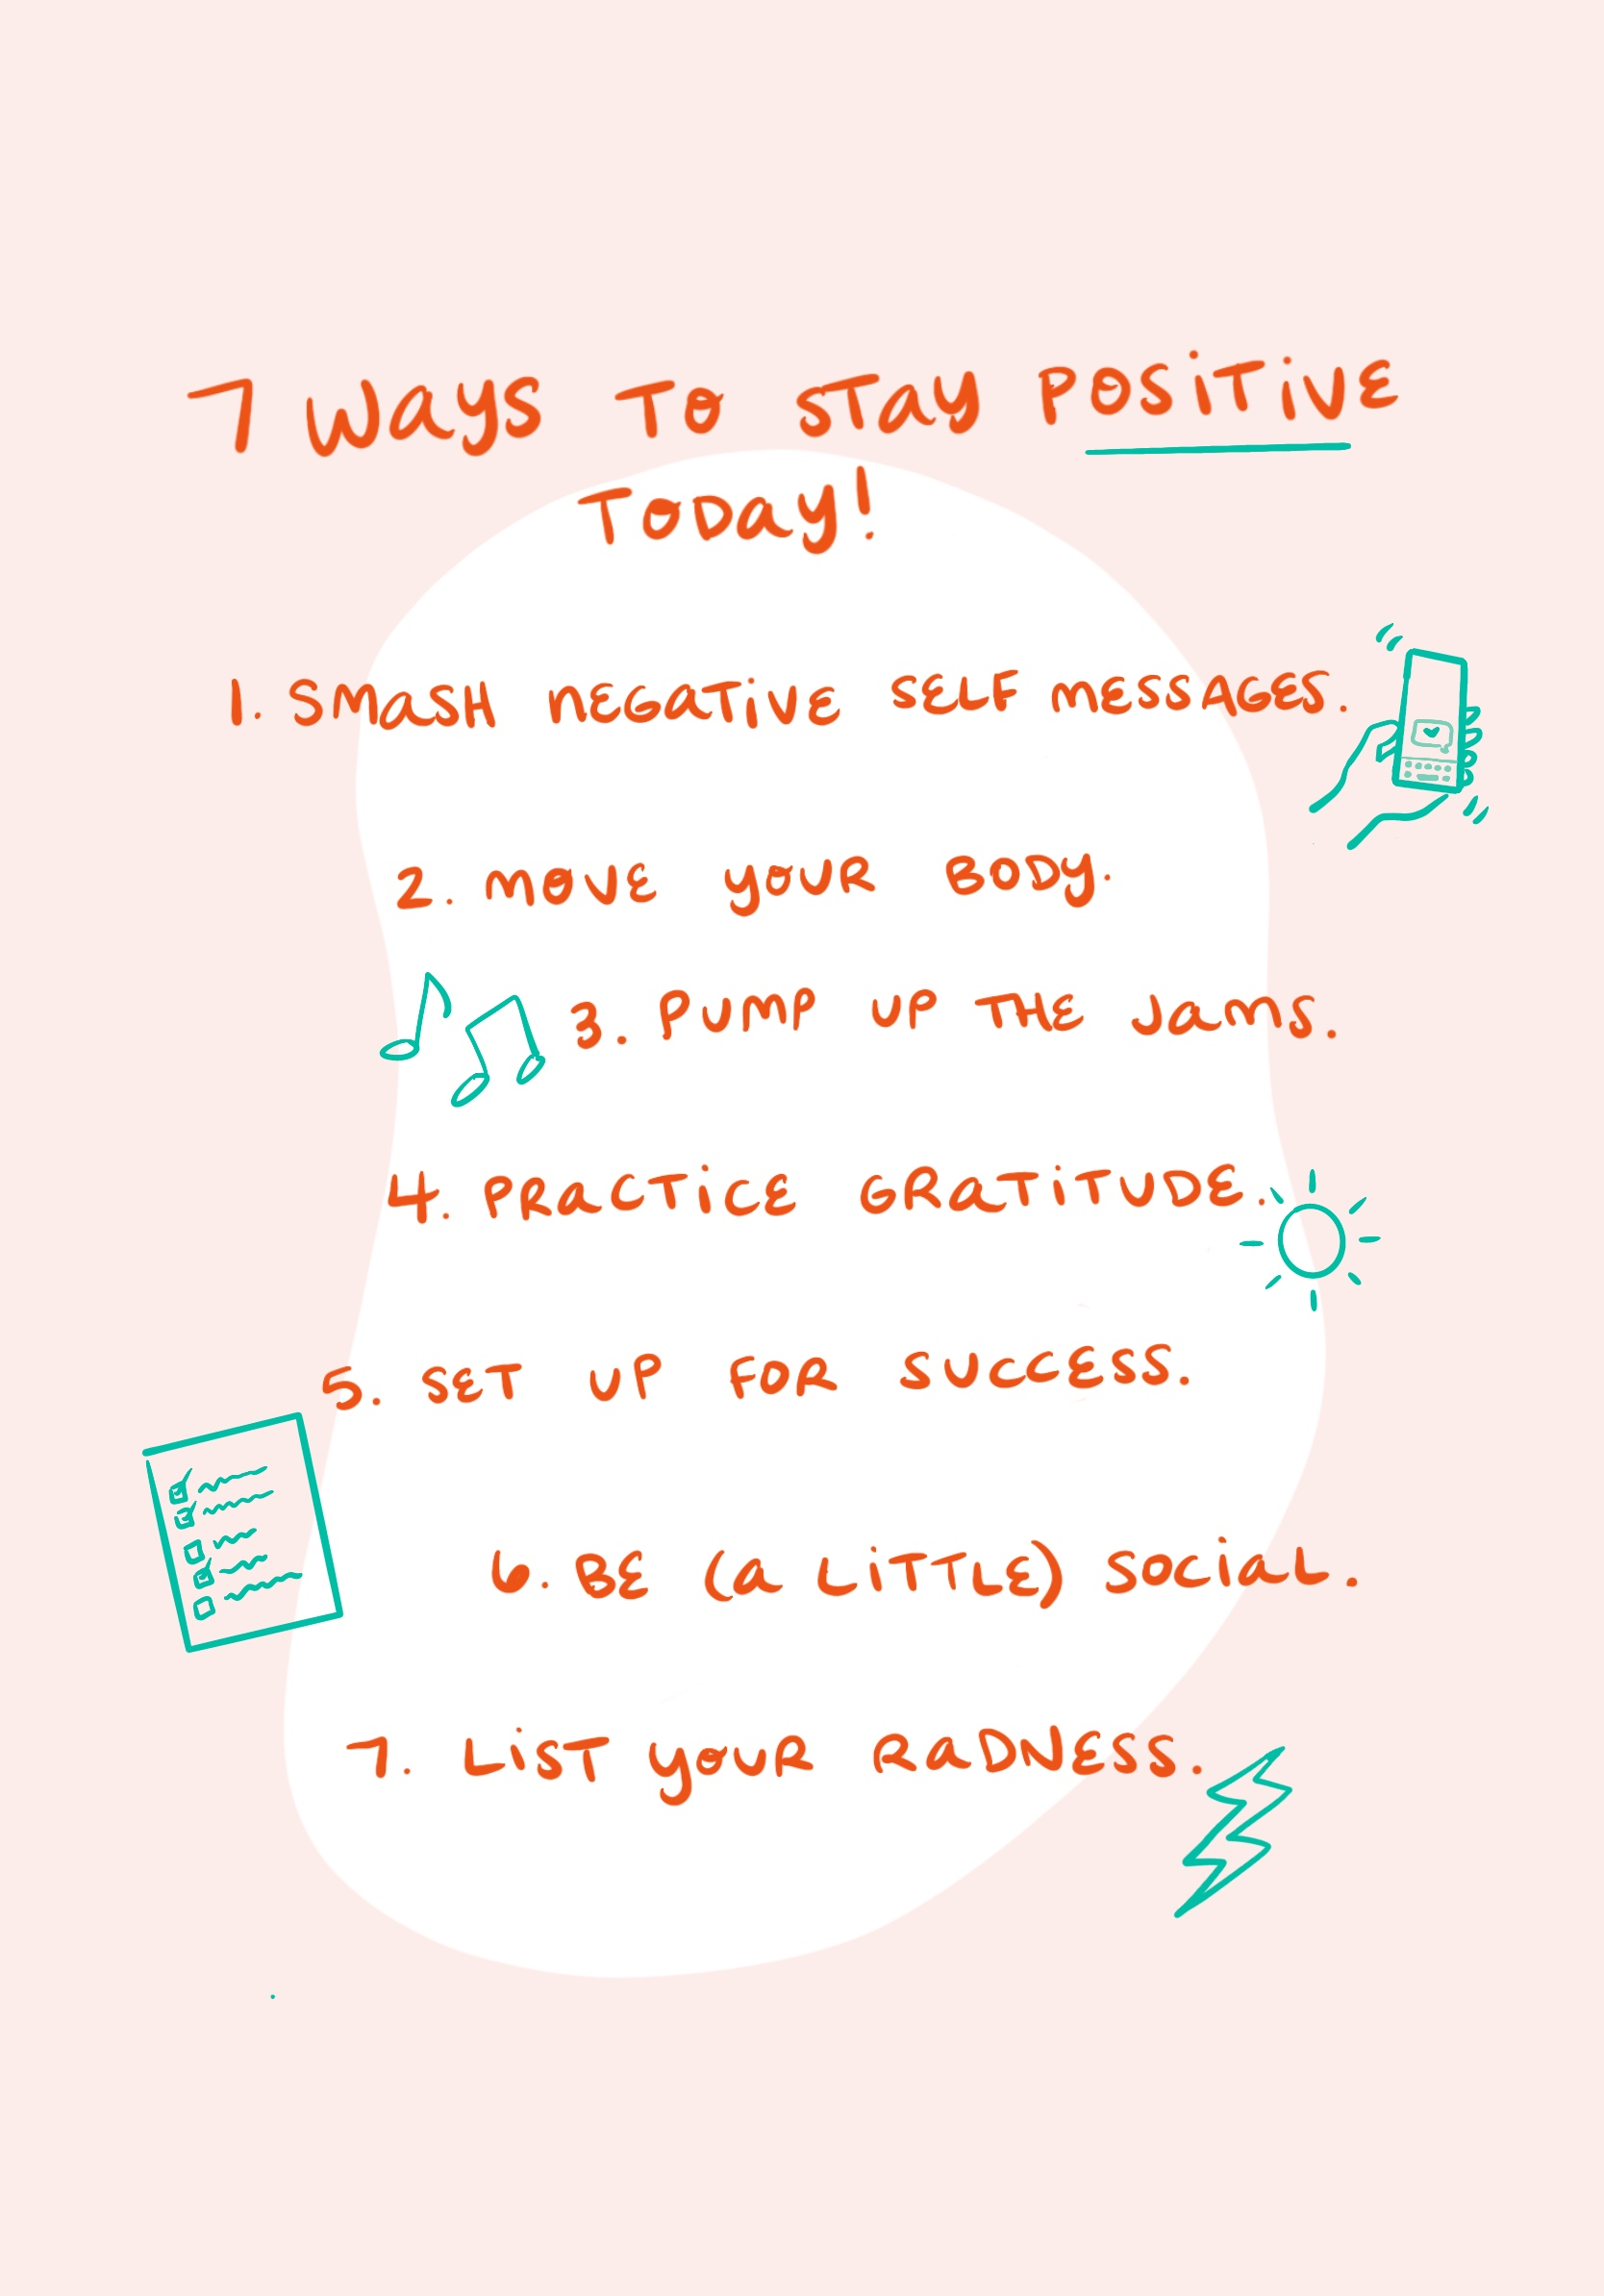 7 Ways to Stay Positive Today Illustration